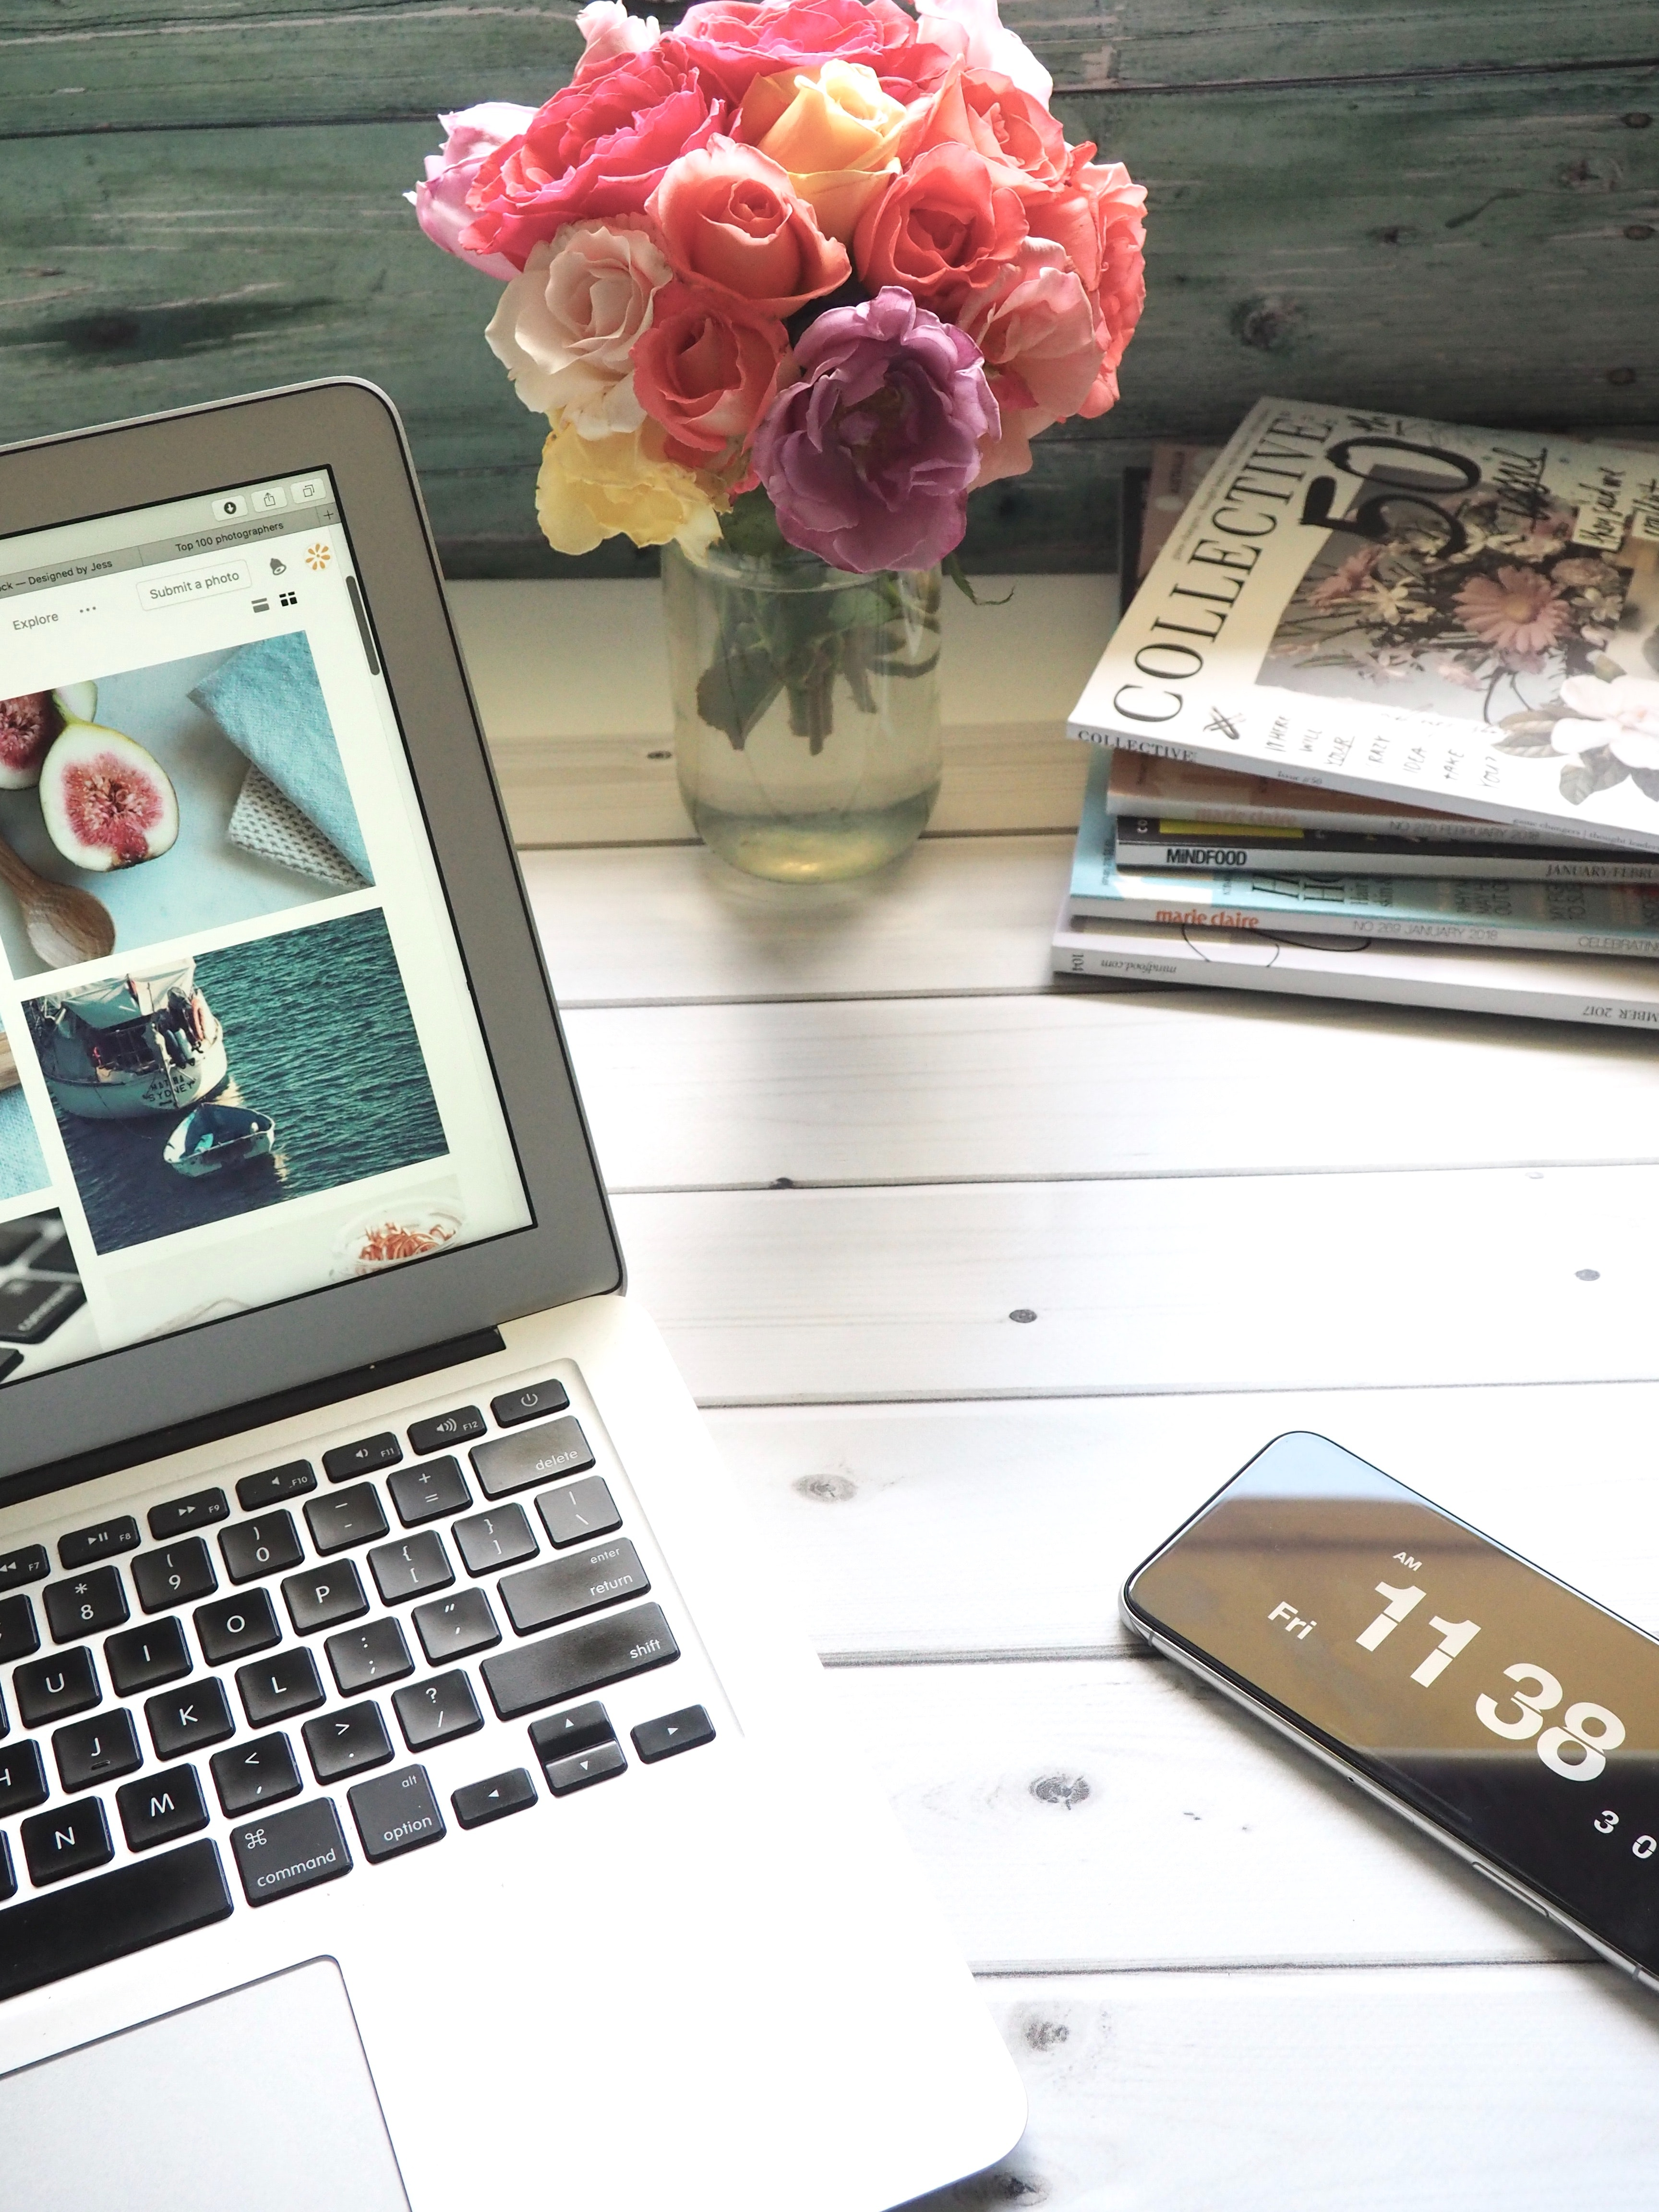 Macbook air, flower bouquet and magazines on white table photo